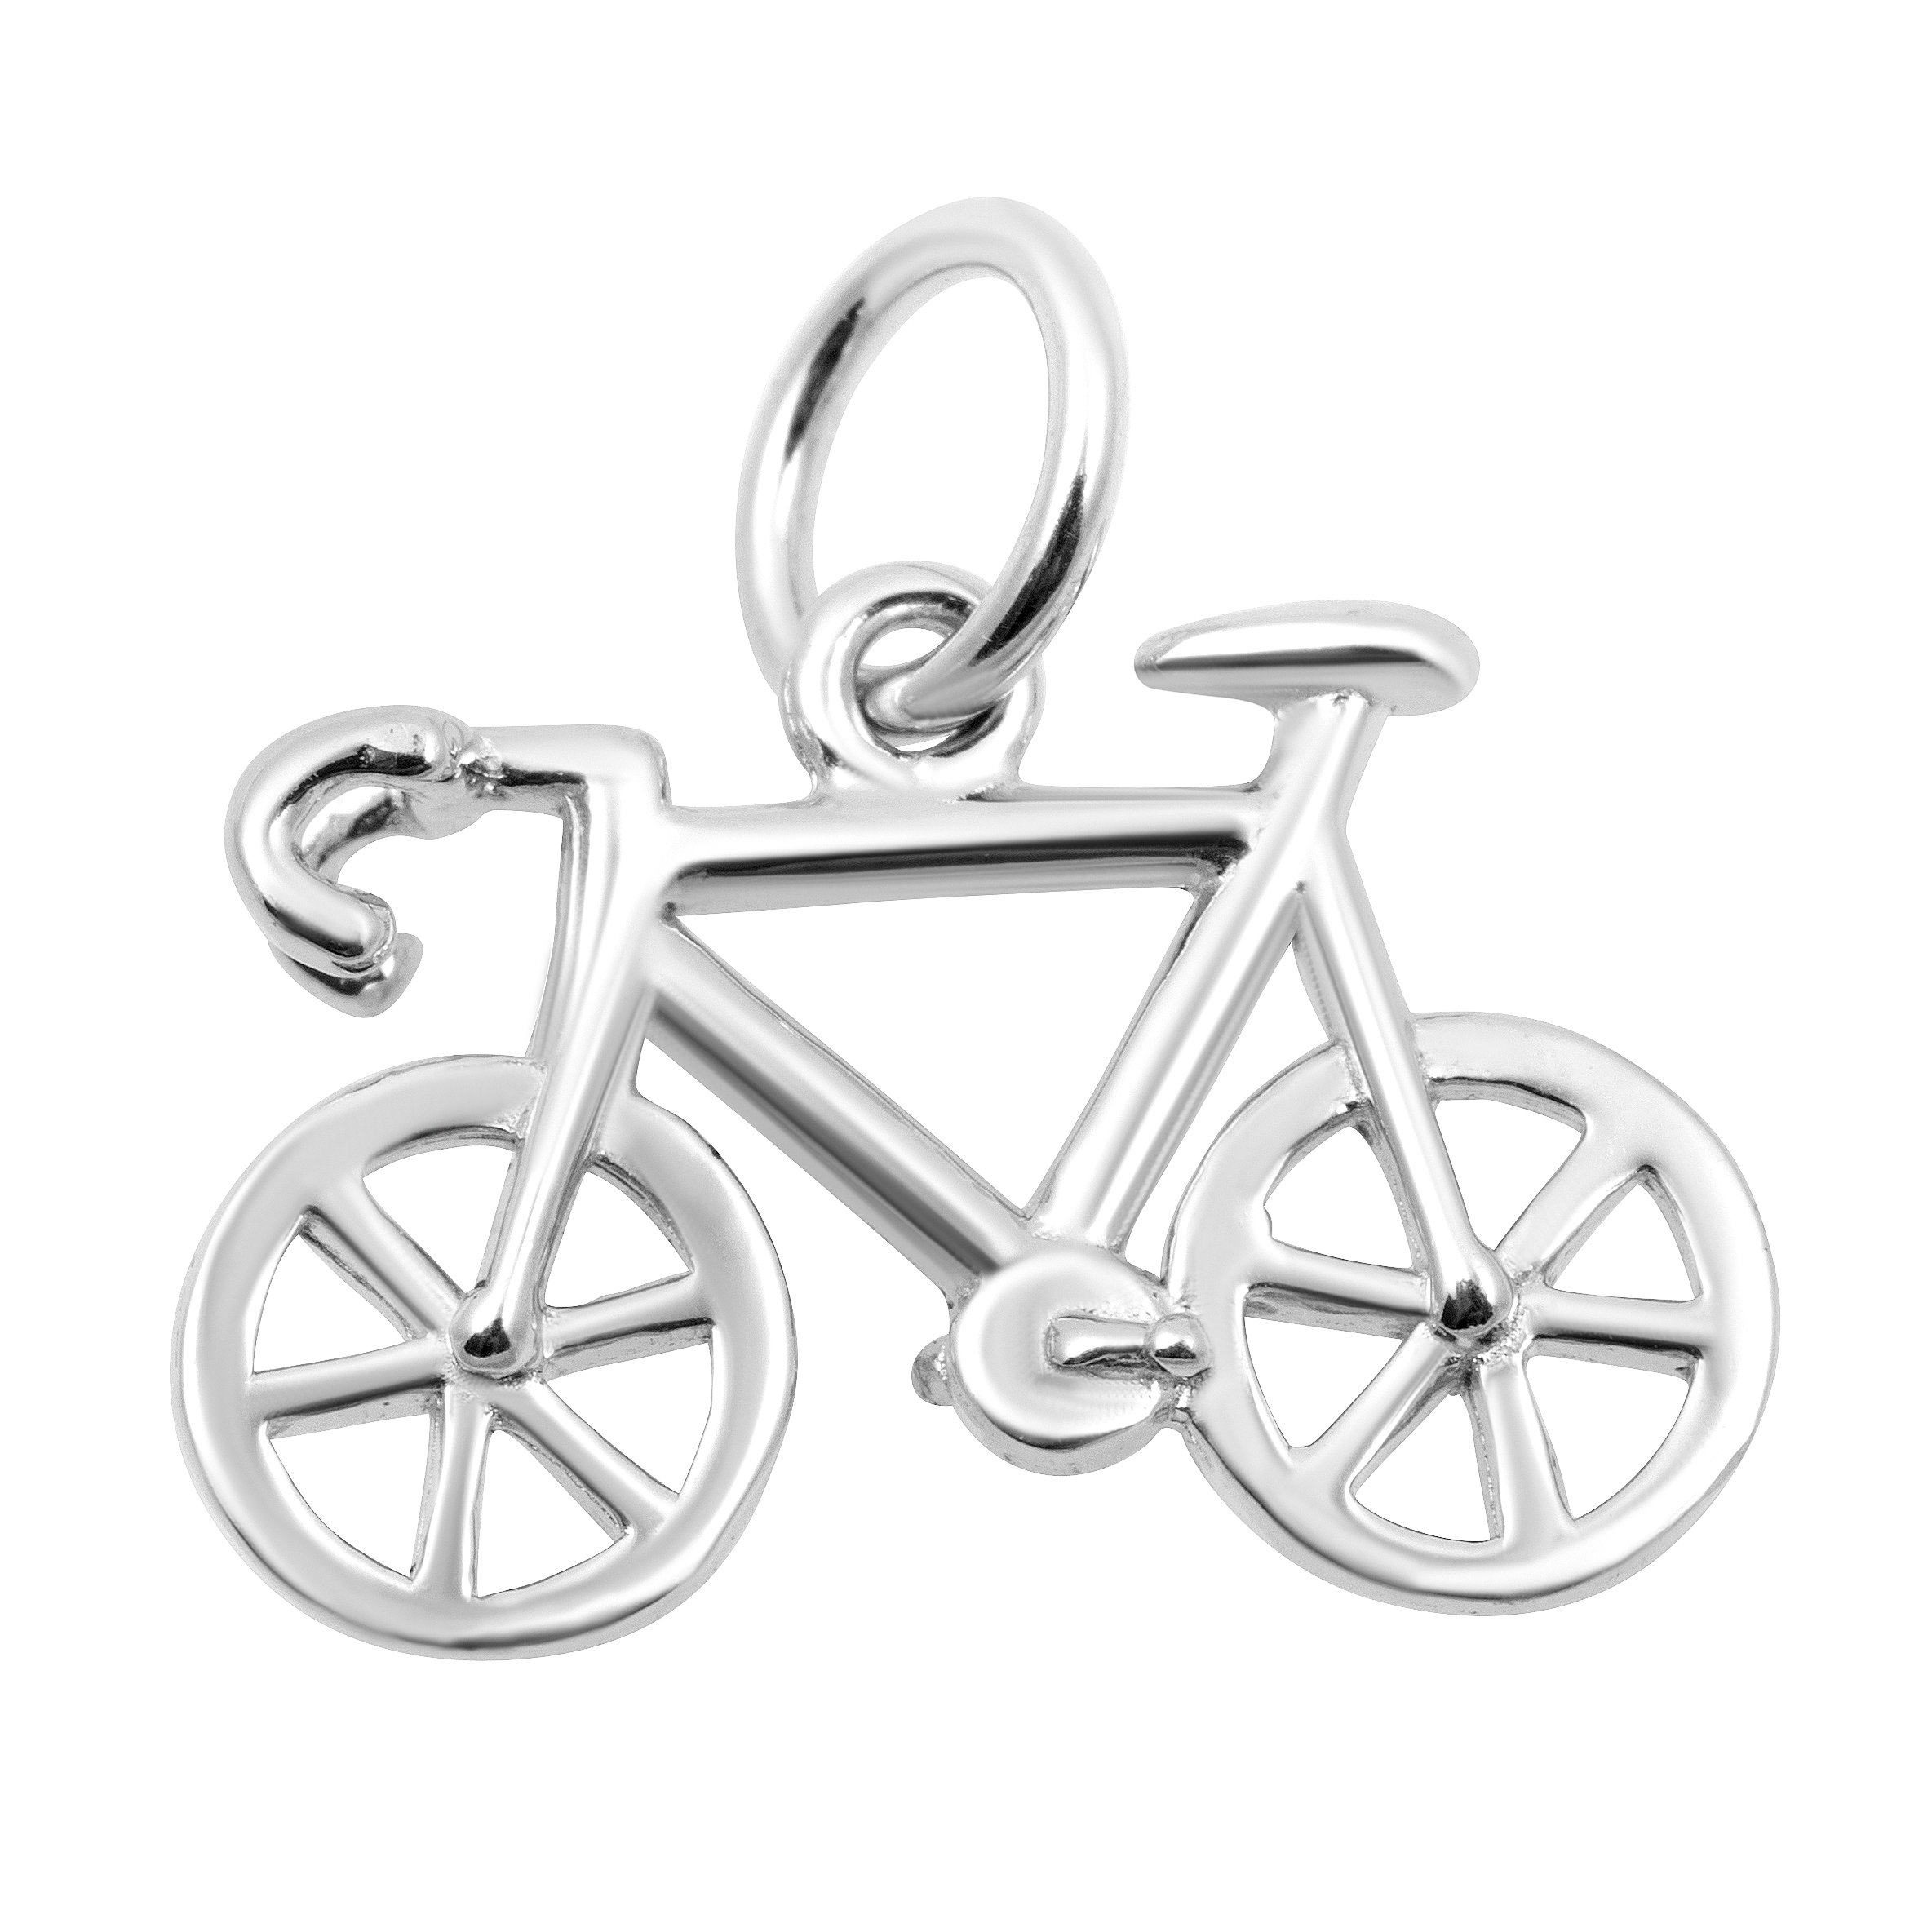 Necklace & Bracelet Charms, Sports & Fitness Theme Sterling Silver Jewelry by Silver on the Rocks by Silver on the Rocks (Image #1)